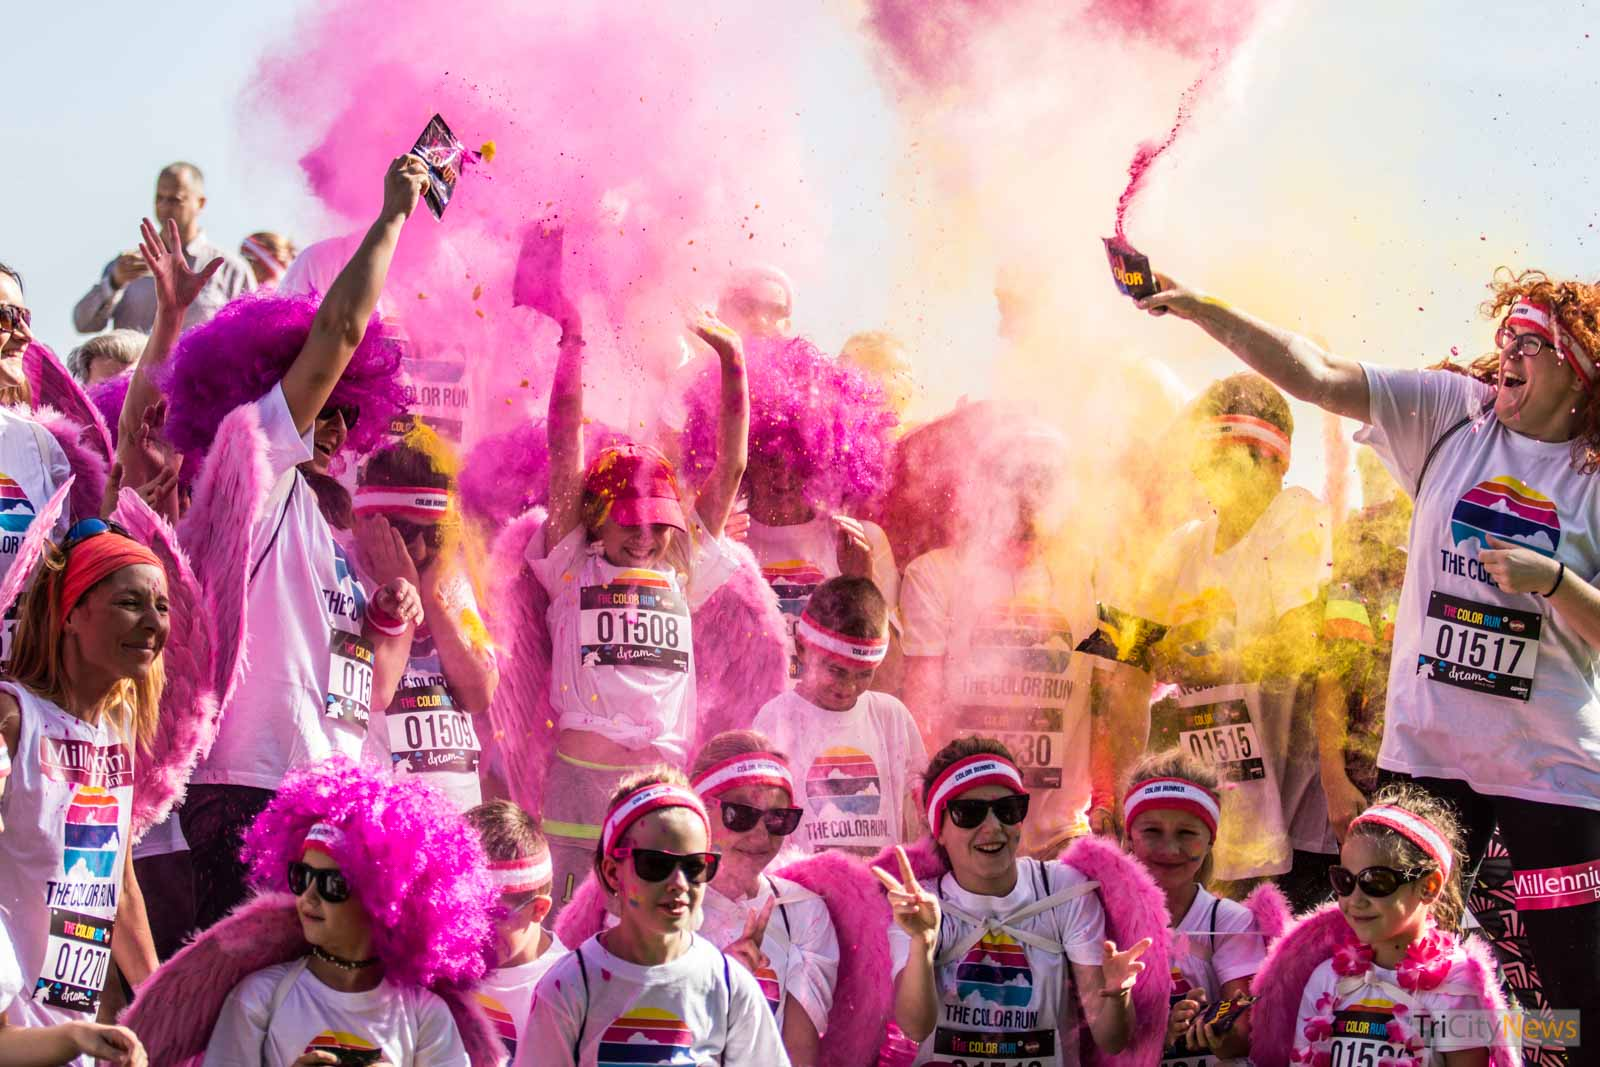 The Color Run by Skittles, photo: Jakub Wozniak/Tricity News